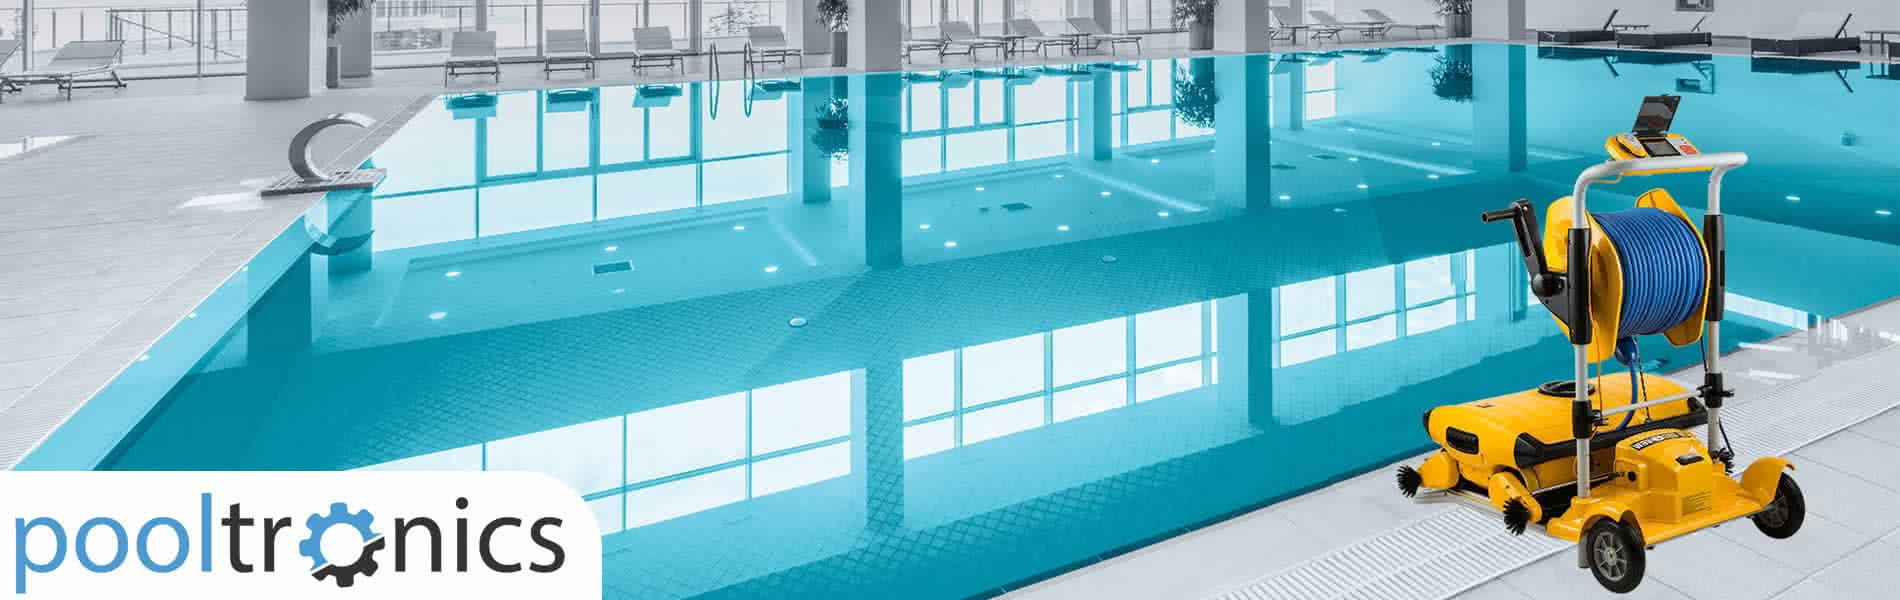 Commercial Swimming Pool Robot Cleaners